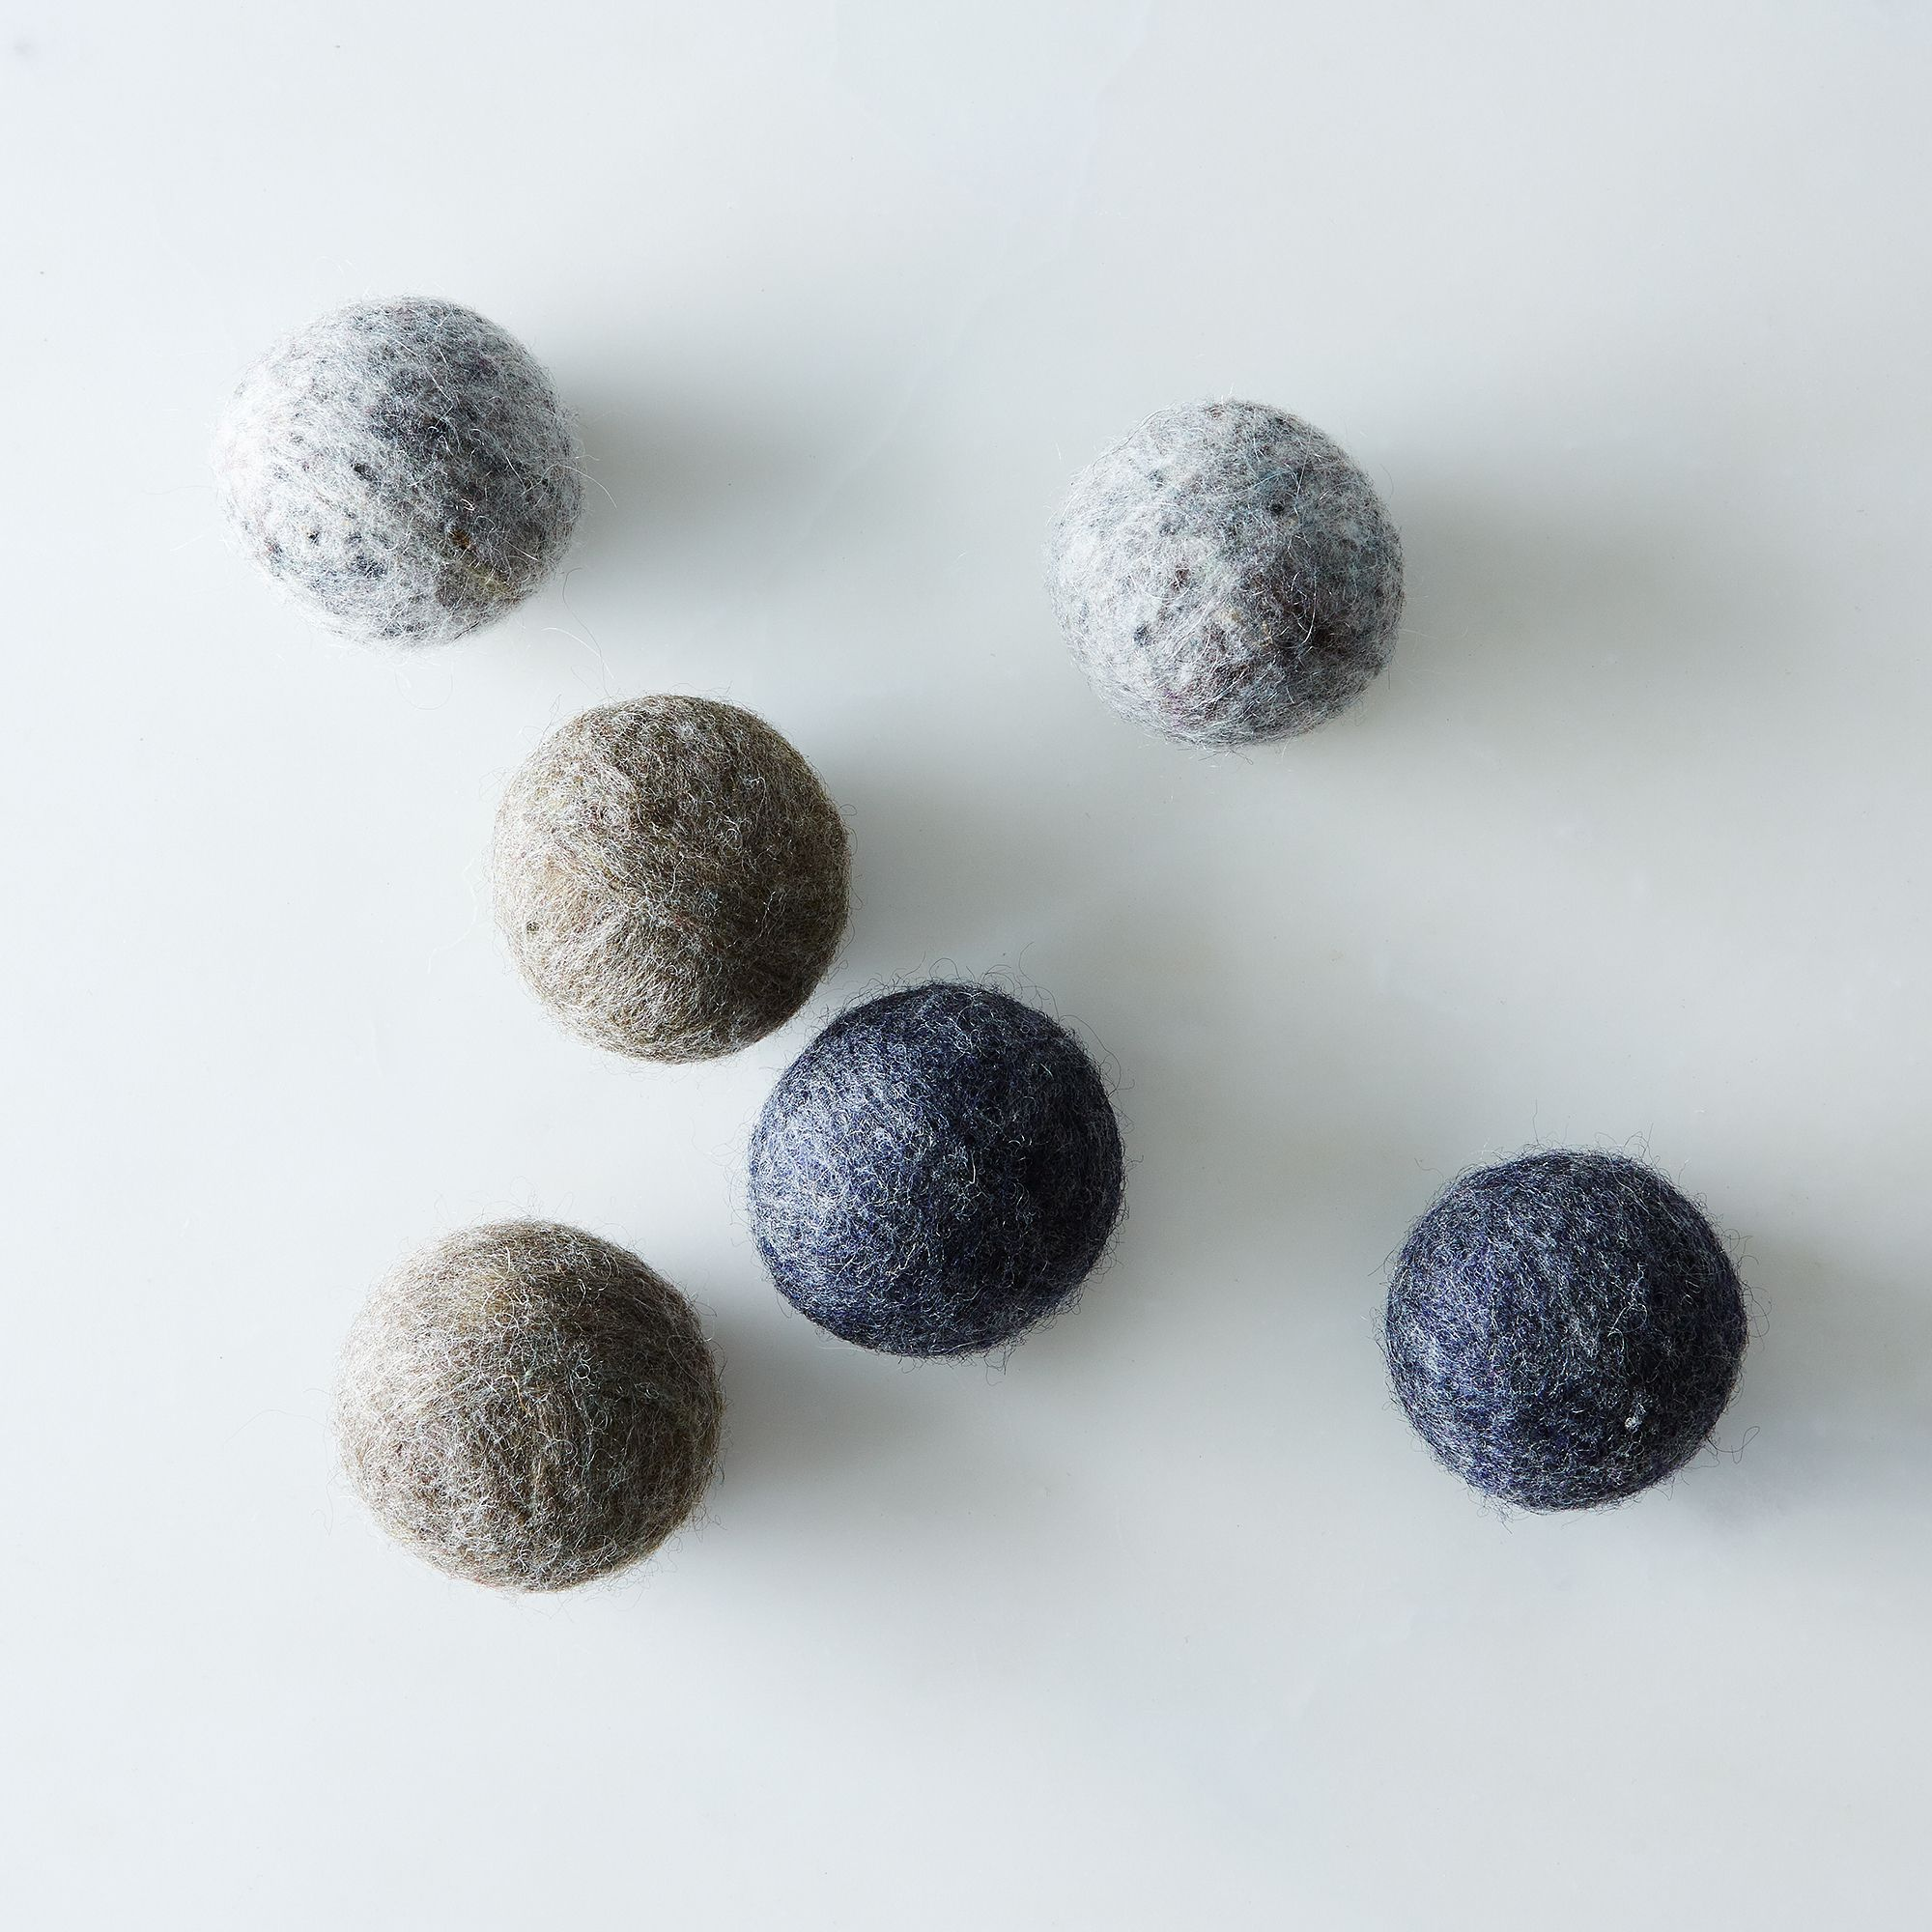 Bf1de89f-cfd1-4be6-a047-5ba08565cf37--2015-0205_bog-berry_dryer-balls_mark-weinberg-035